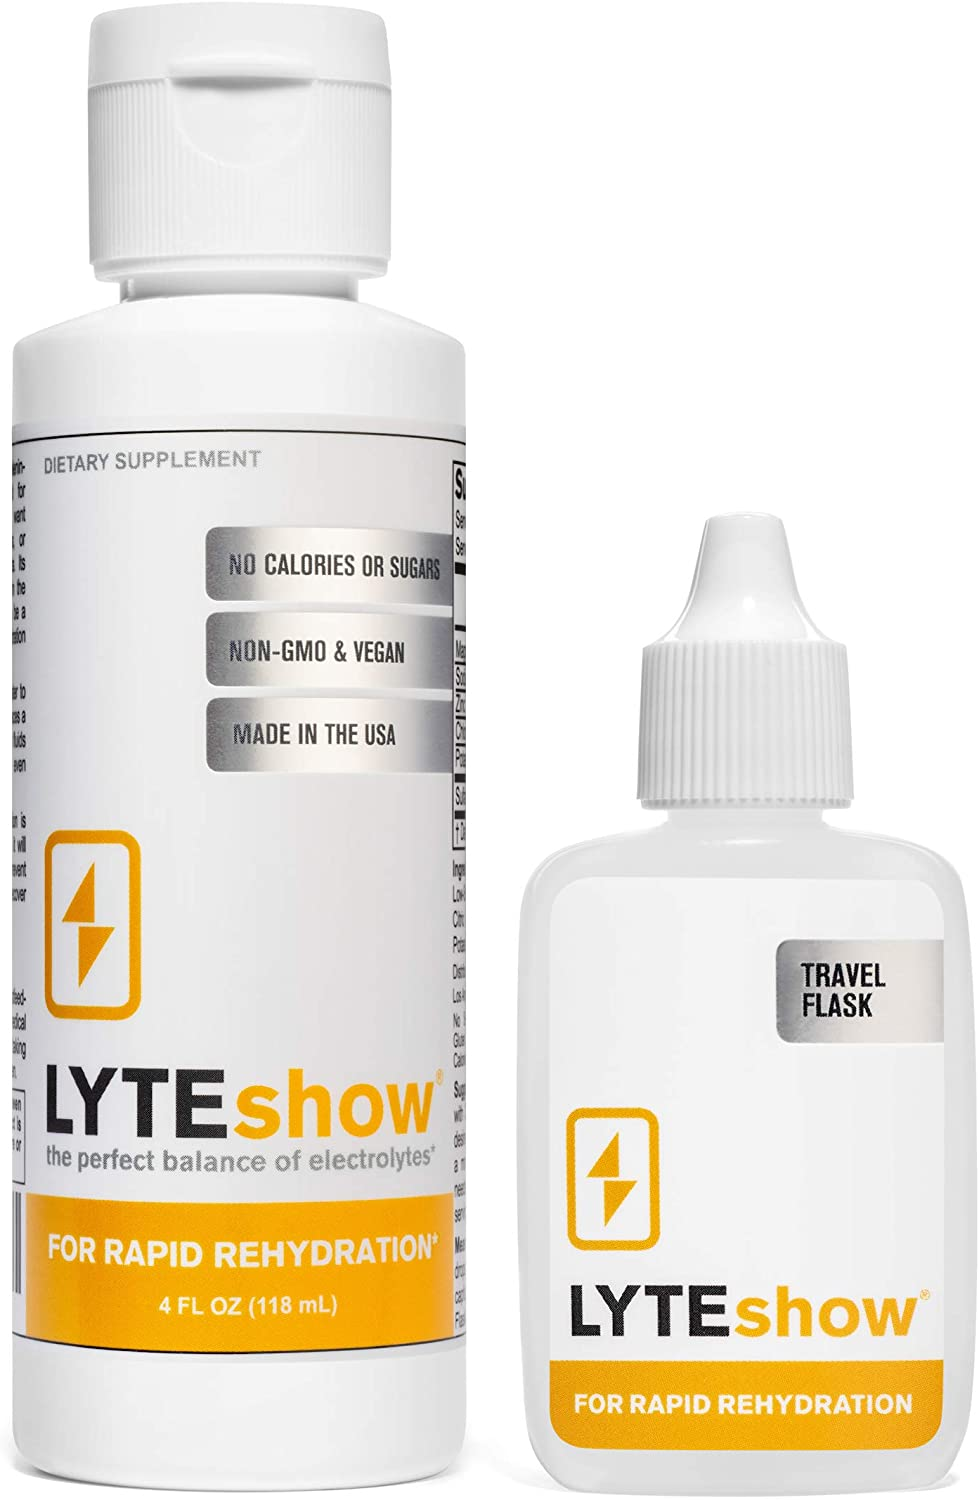 LyteShow Sugar-Free Electrolyte Supplement